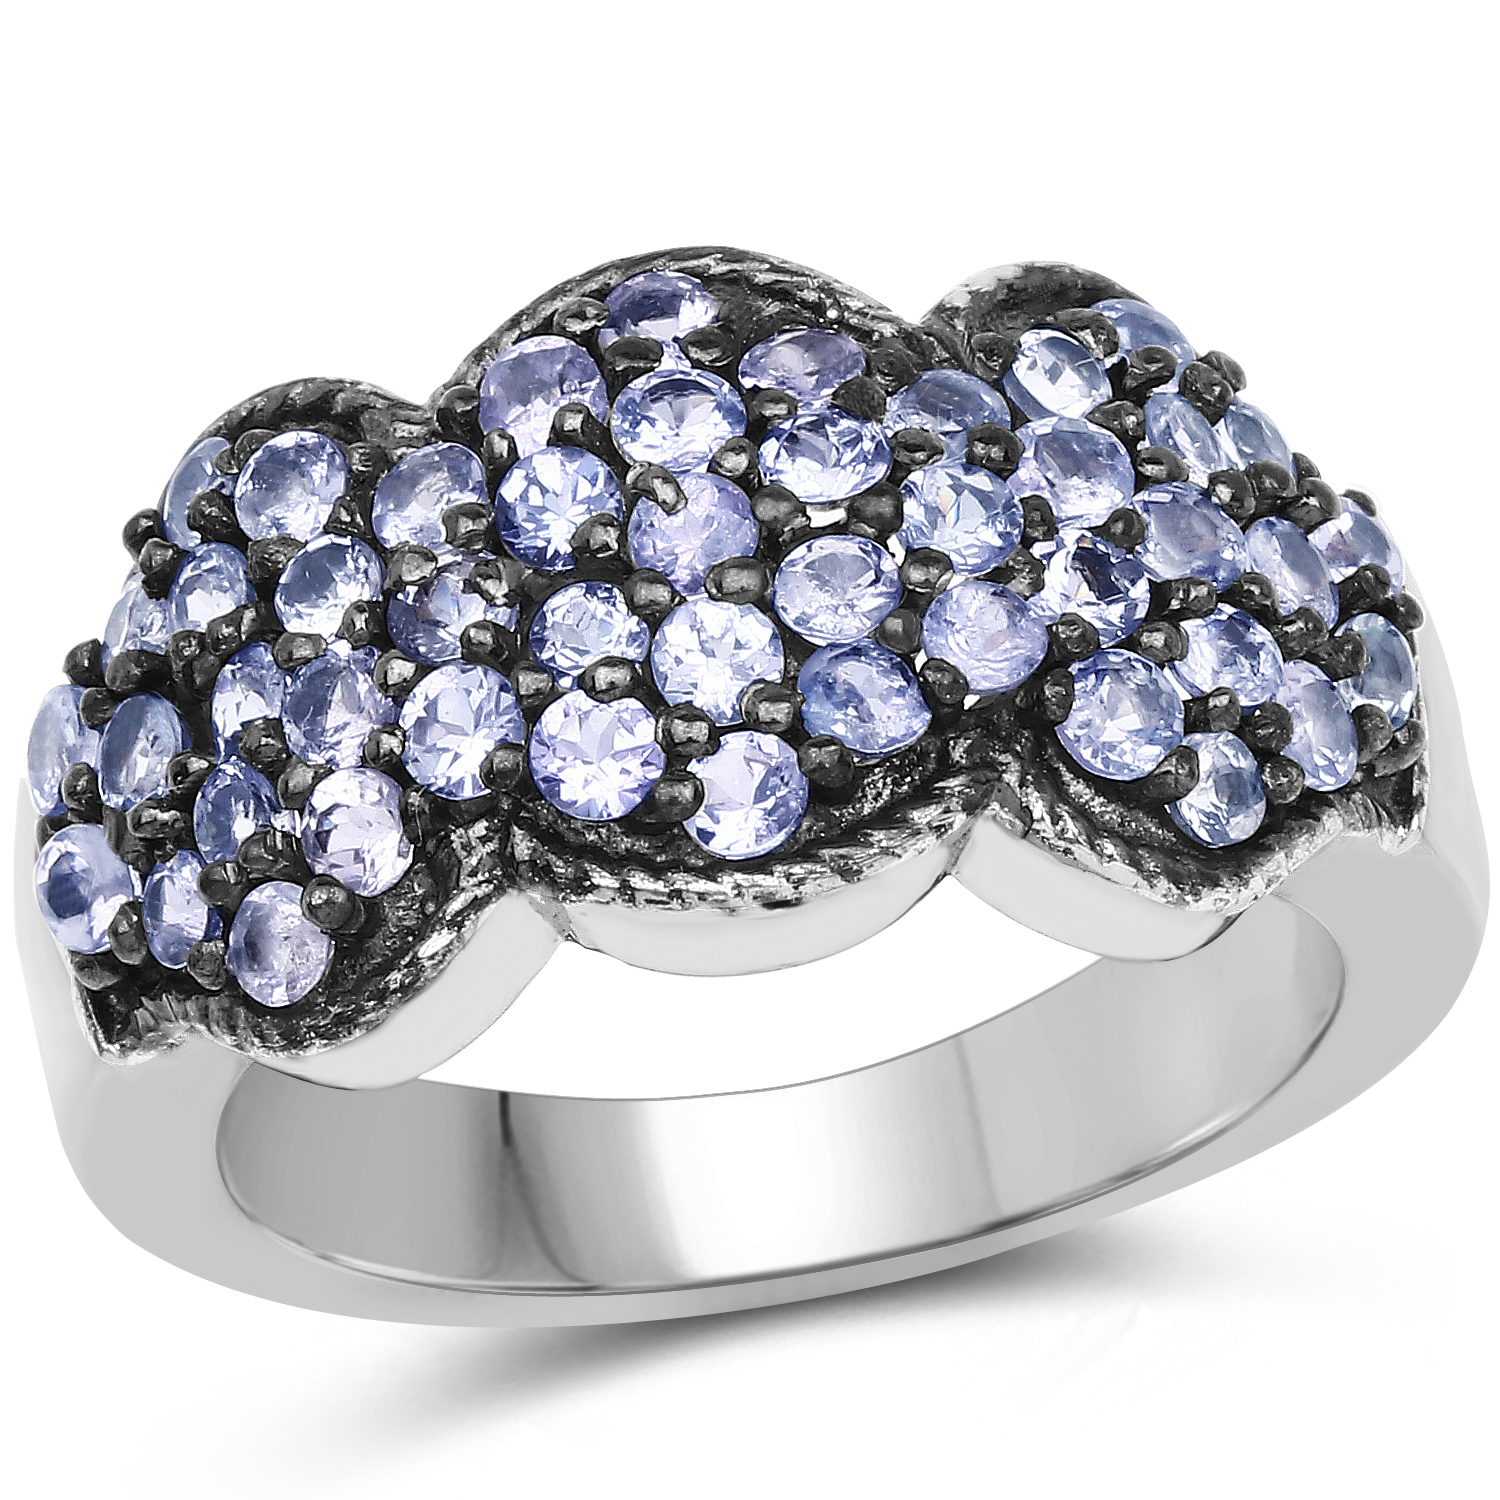 1.41 ct. Genuine Tanzanite Sterling Silver Ring by DAZYLE